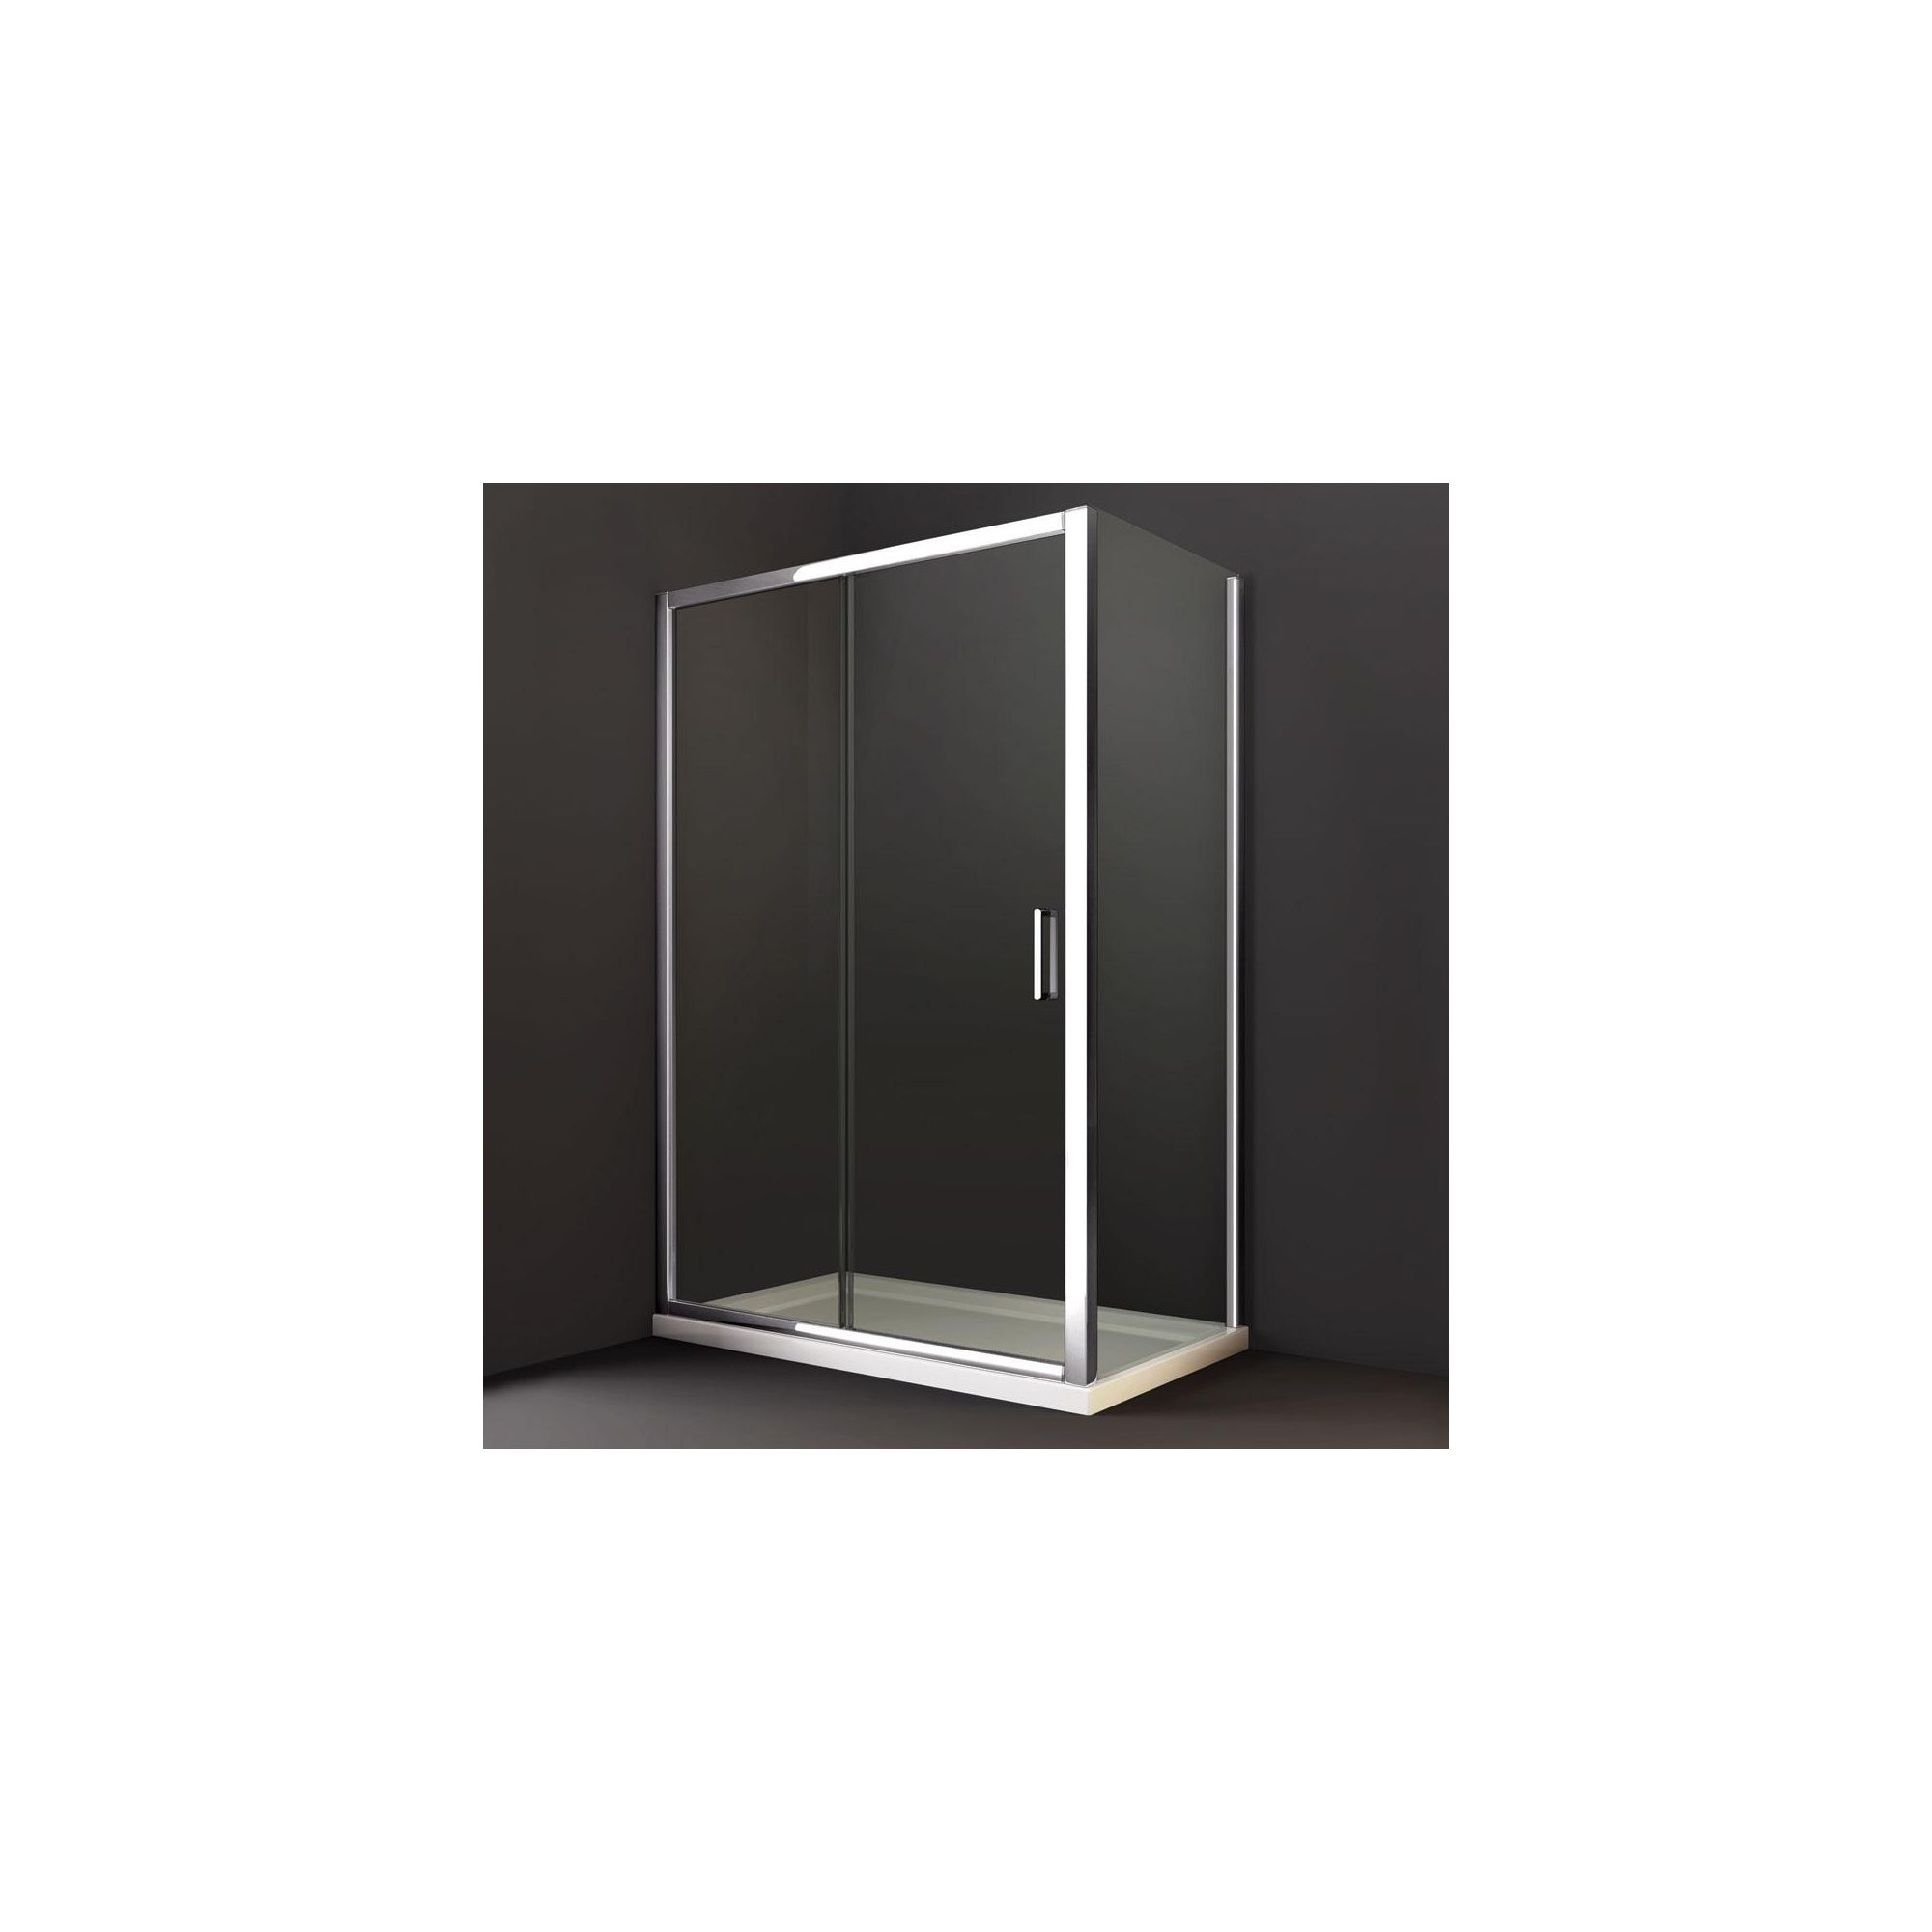 Merlyn Series 8 Sliding Shower Door, 1400mm Wide, Chrome Frame, 8mm Glass at Tesco Direct